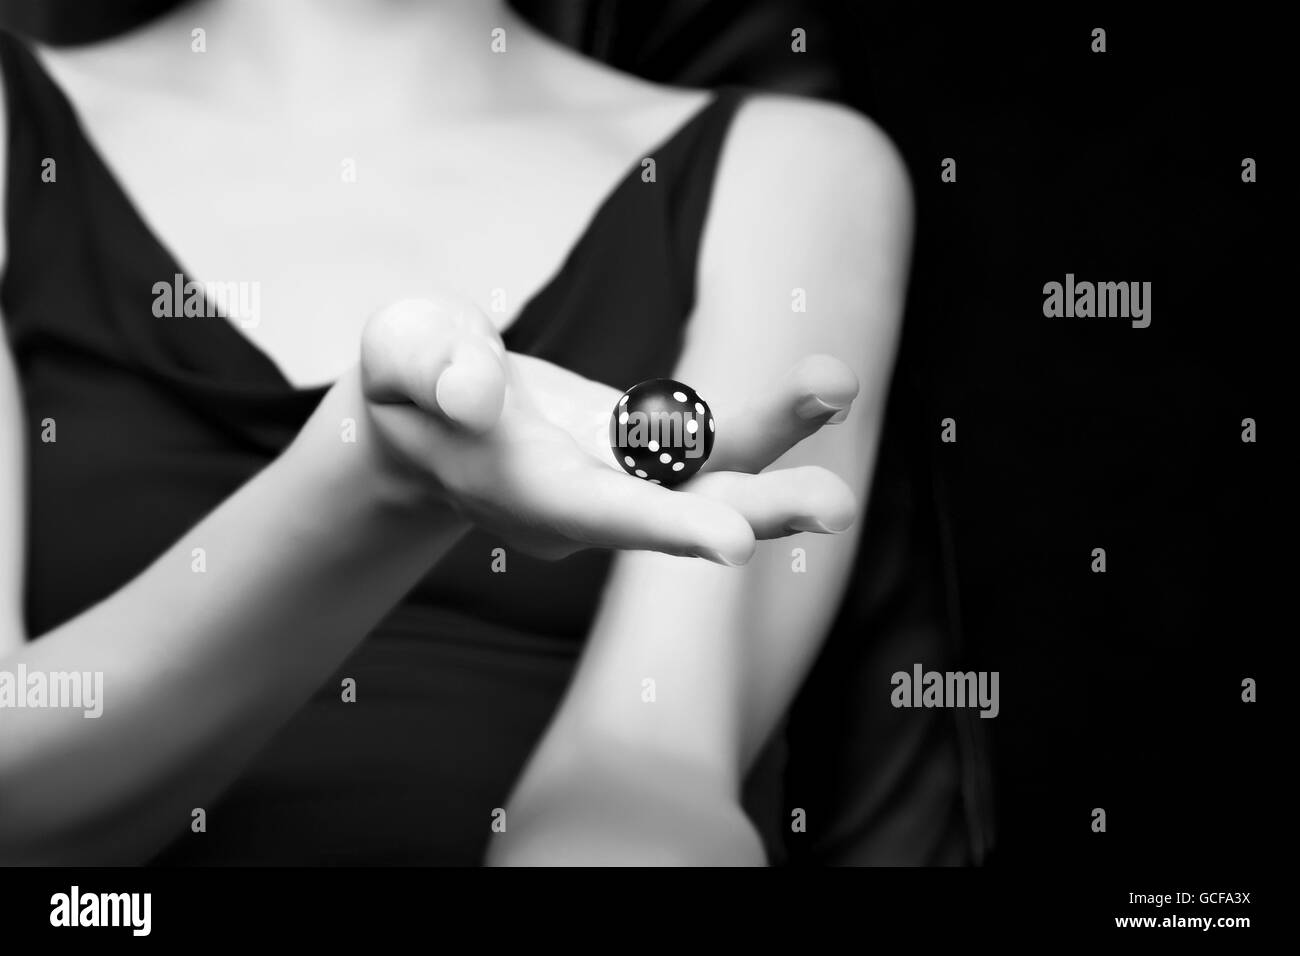 Blurred woman silhouette holding round dice in her hand. Gambling, fortune or randomize concept, black and white - Stock Image